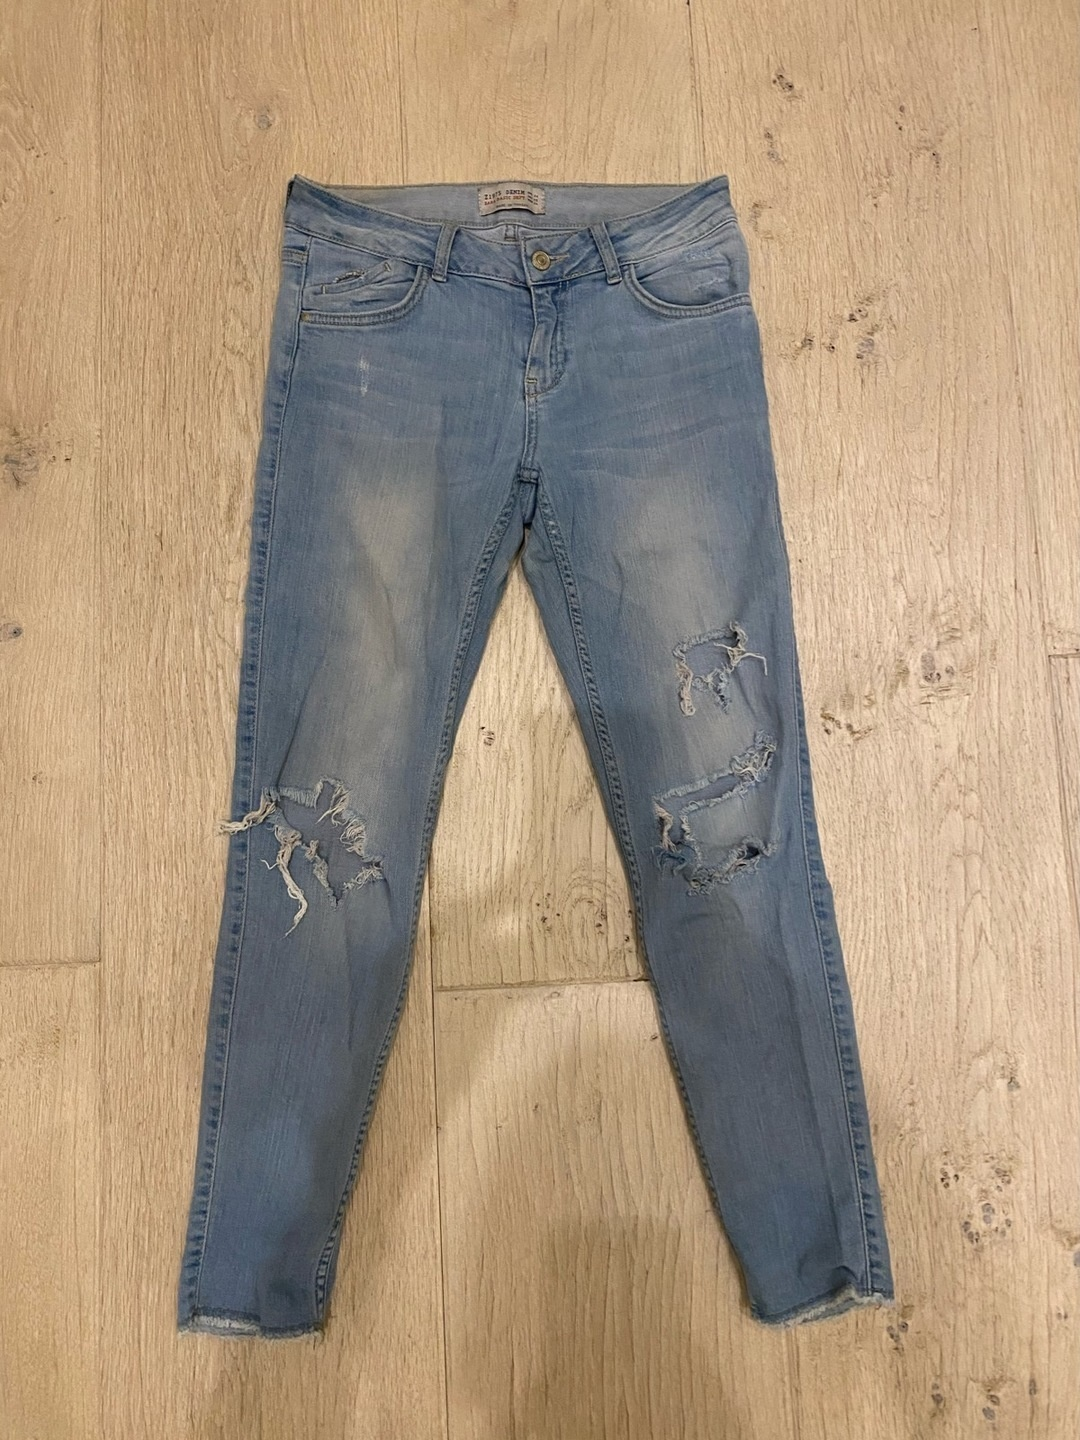 Damen hosen & jeans - ZARA photo 4